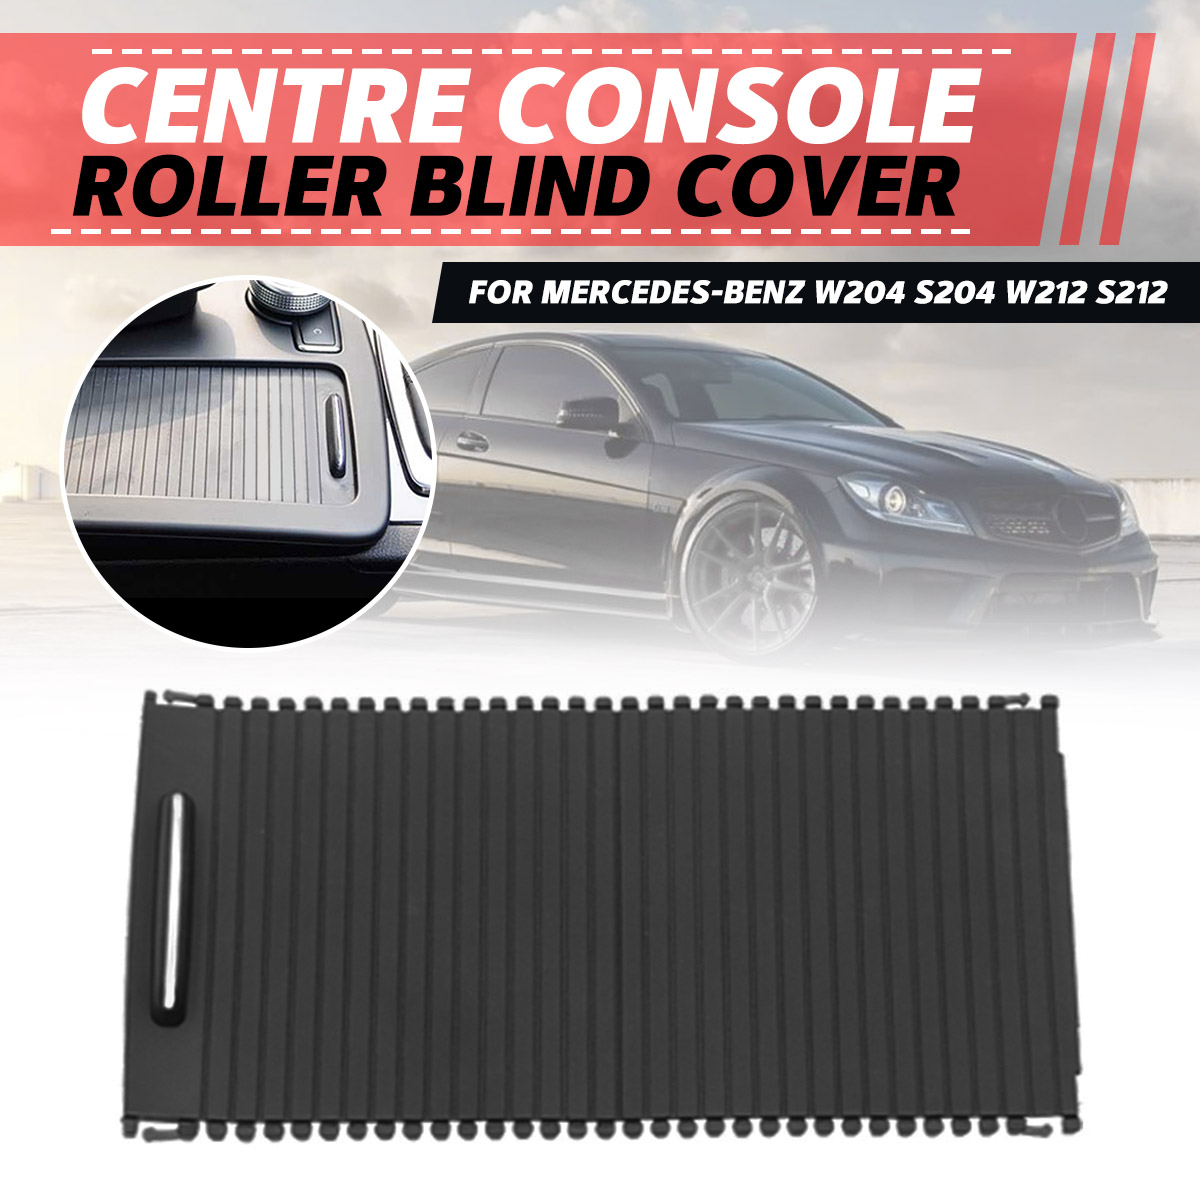 1x Car Roller Blinds for W212 Center Console Cover For Benz C-class W204 S204 E-class S212 Water Cup Rack Roller A20468047089051